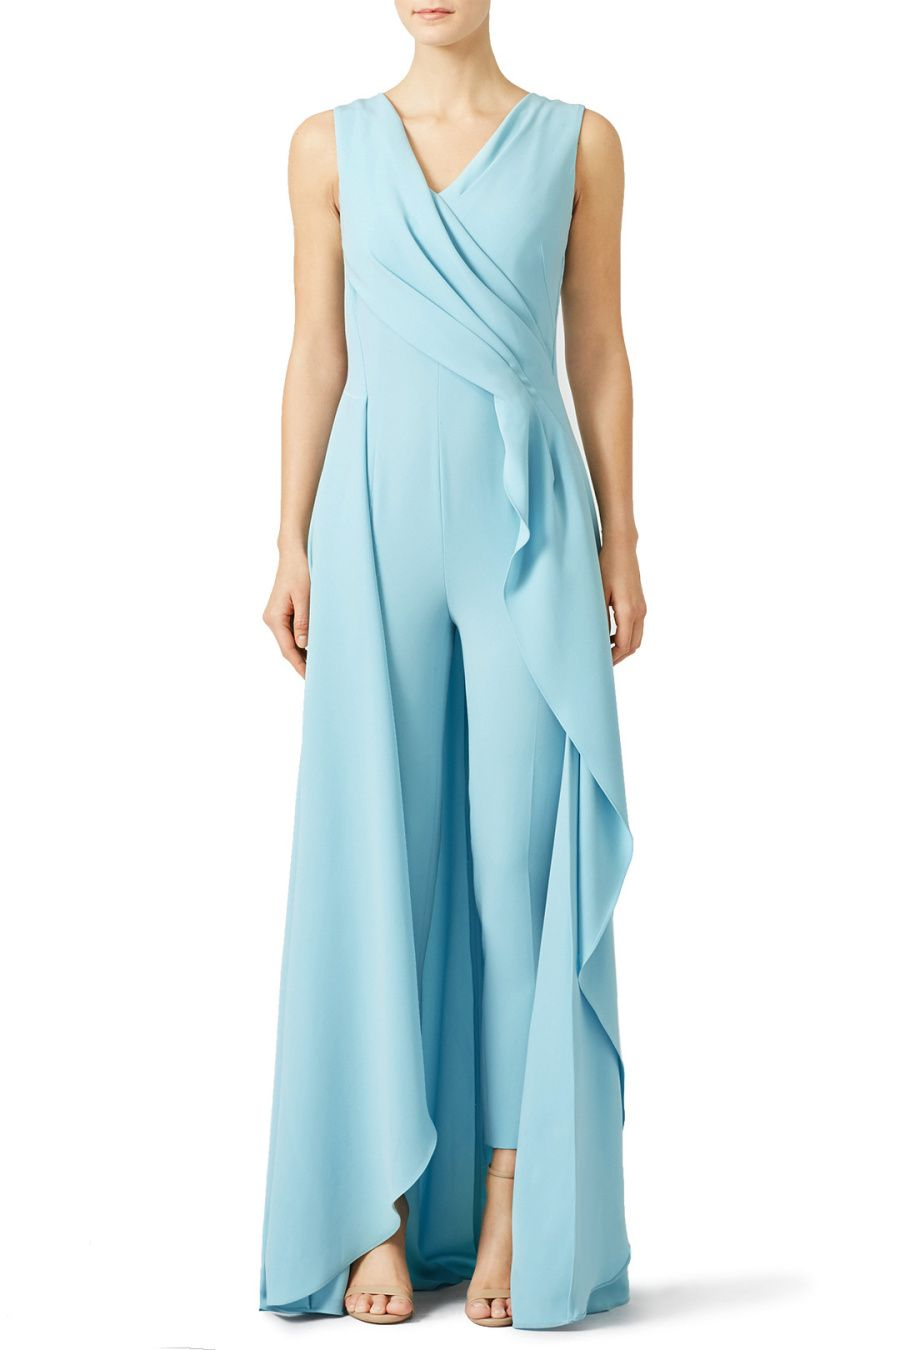 25 Jumpsuits You Could Totally Get Away With Wearing to a Wedding ...